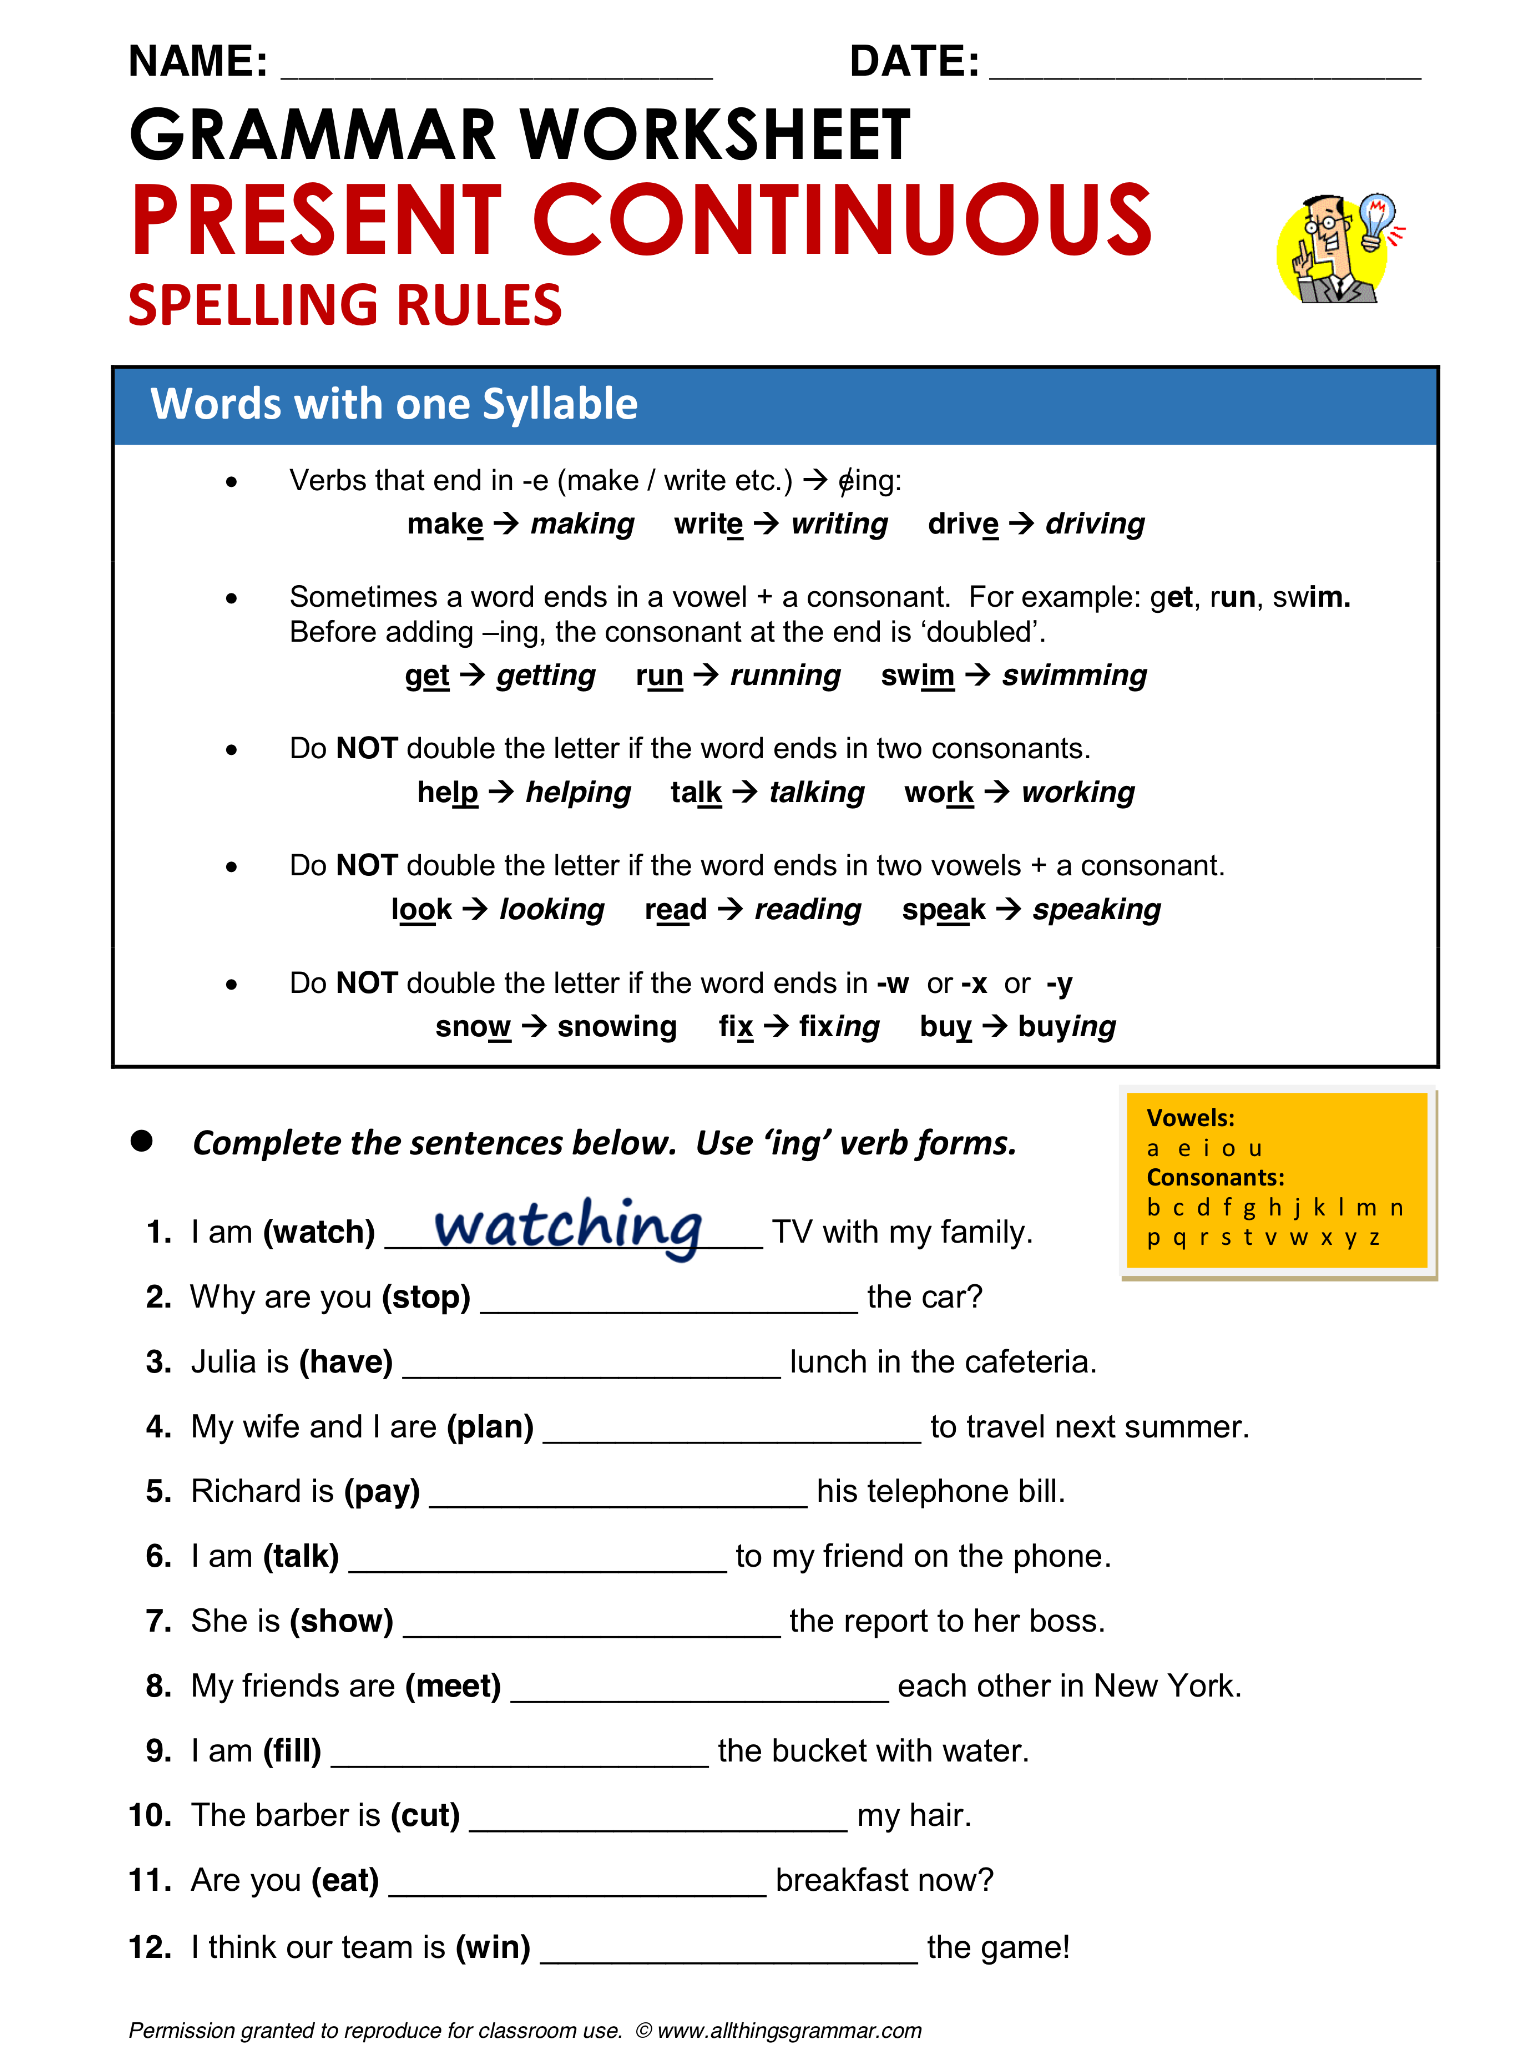 English Grammar Present Continuous Spelling Rules Words